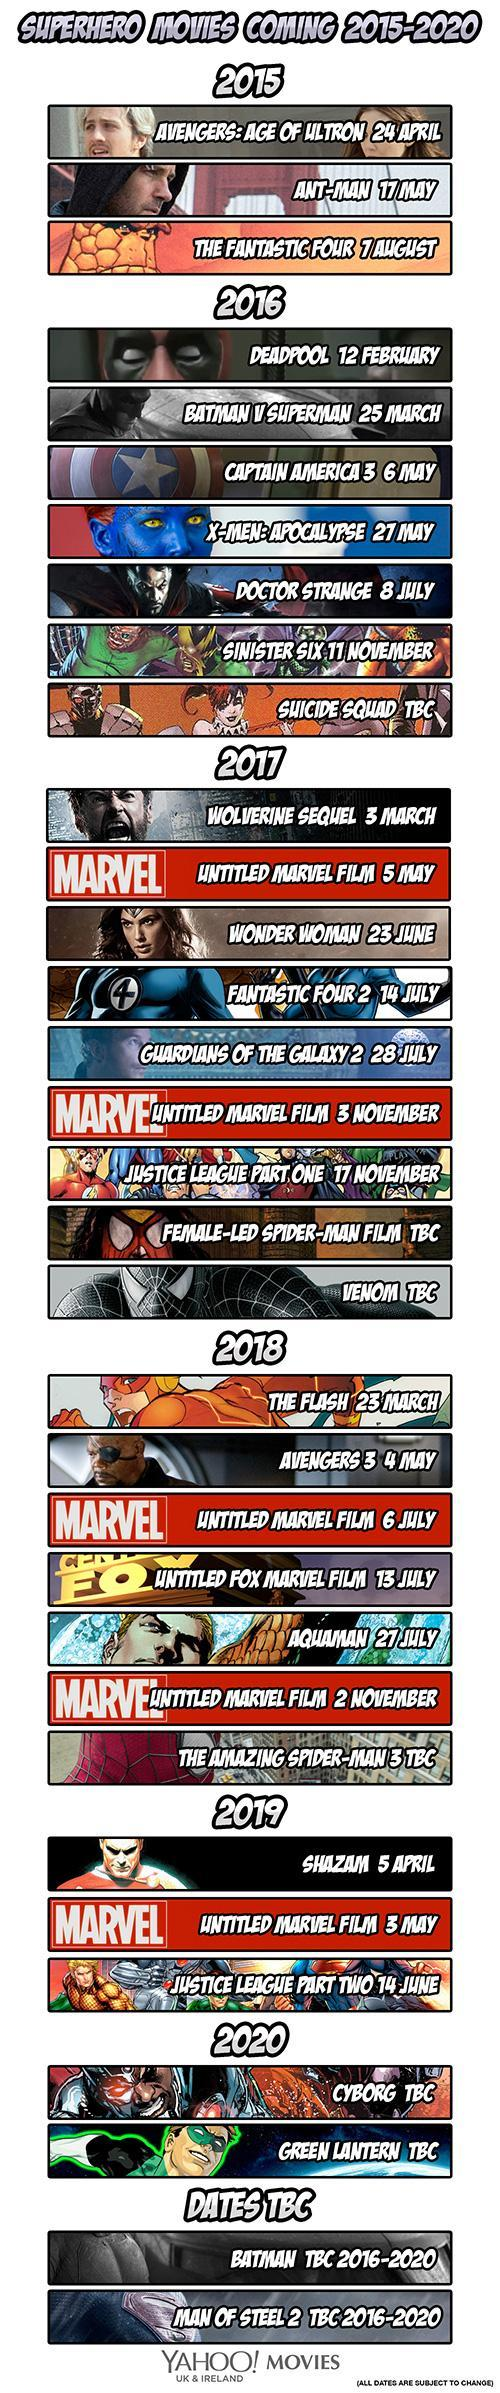 Ultimate List Of Every Superhero Movie Release Date From 2015-2020